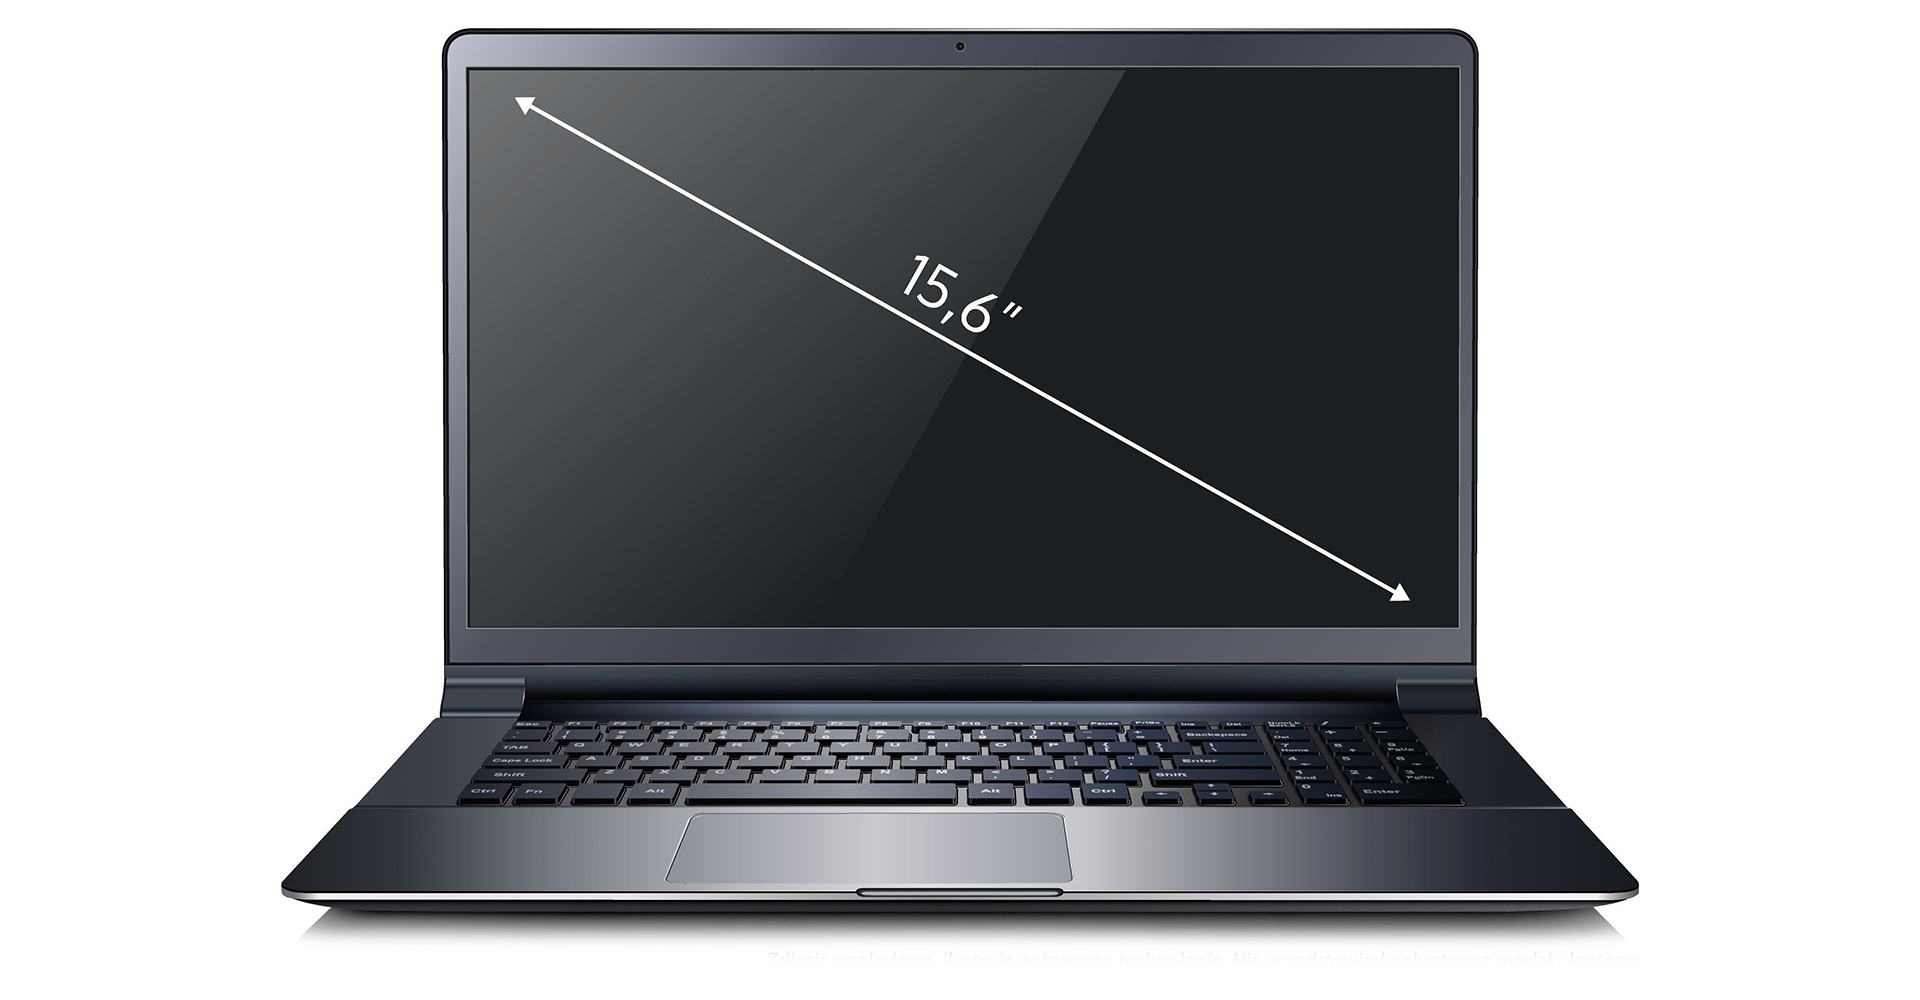 Dell Inspiron 15 3583 i3-8145U 8GB 256GB Linux                             15.6 collas pa diagonāli